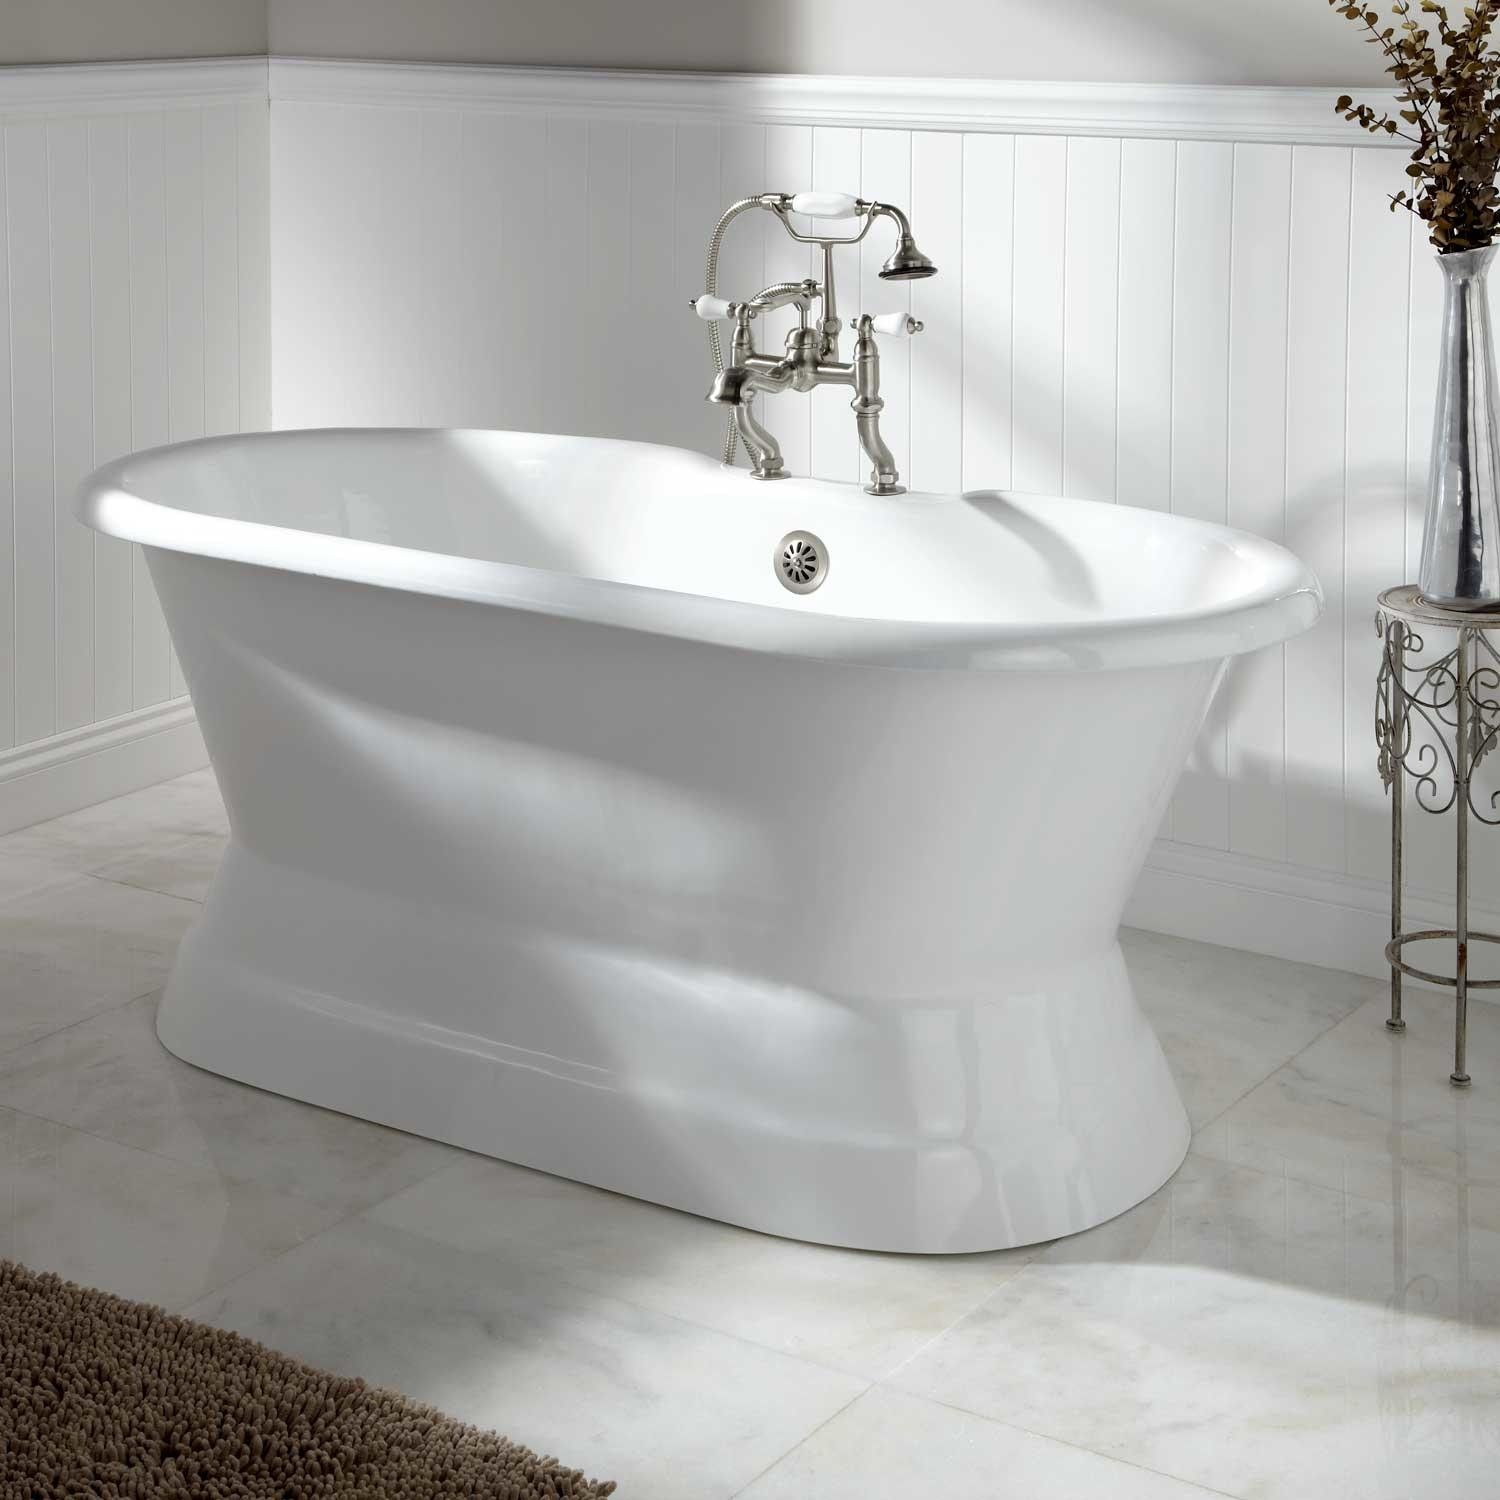 bathtubs crane legs the vintage tubs pedestal homy antique ideas bathtub tub